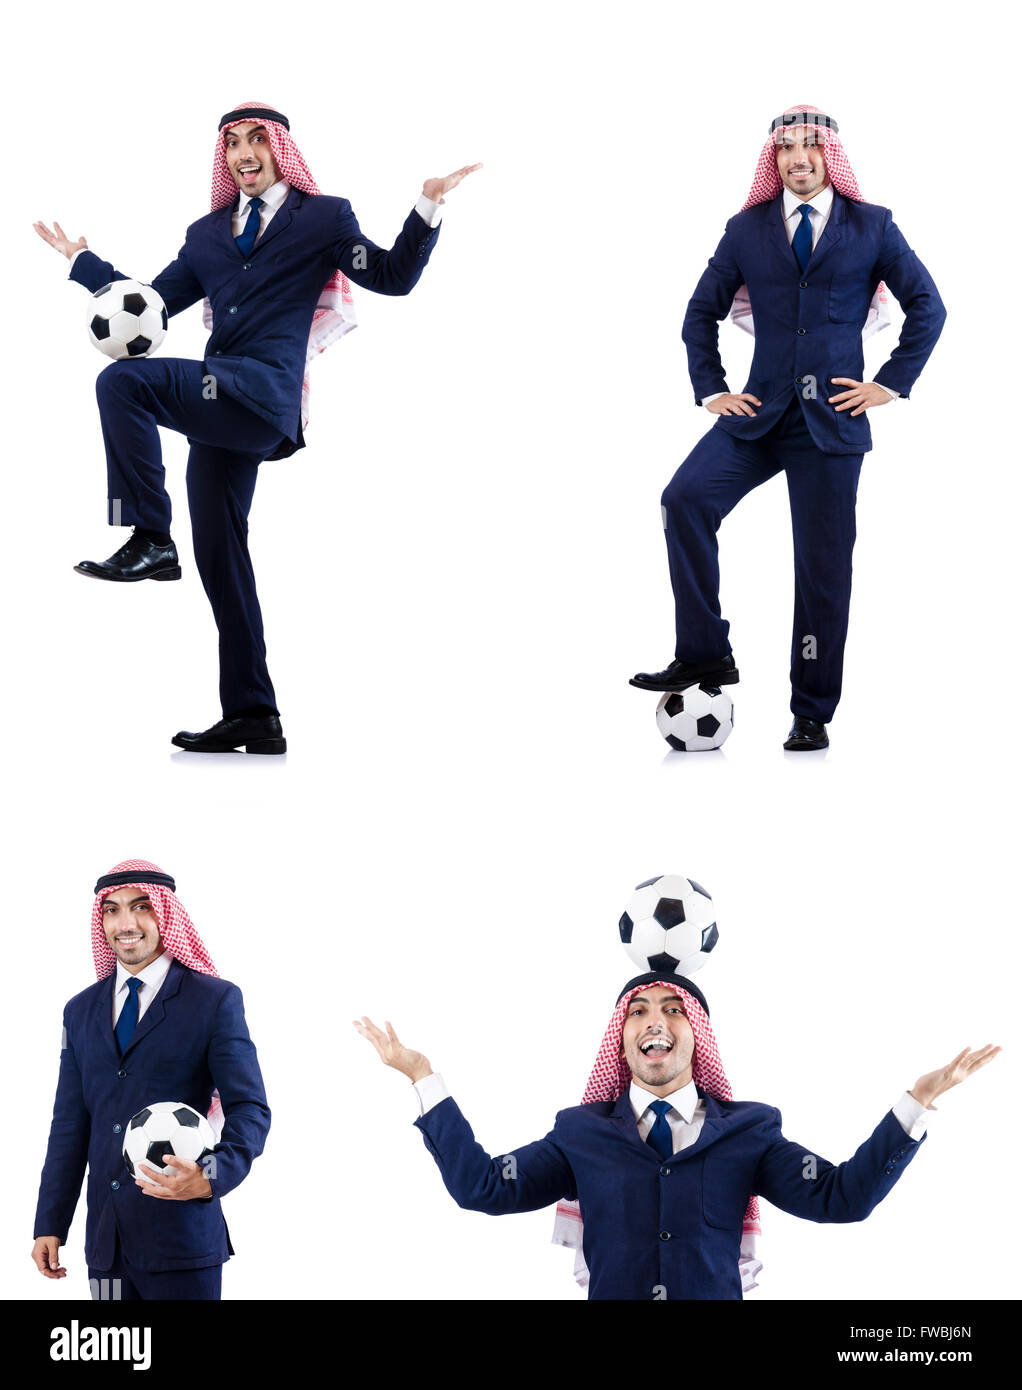 Arab businessman with football - Stock Image